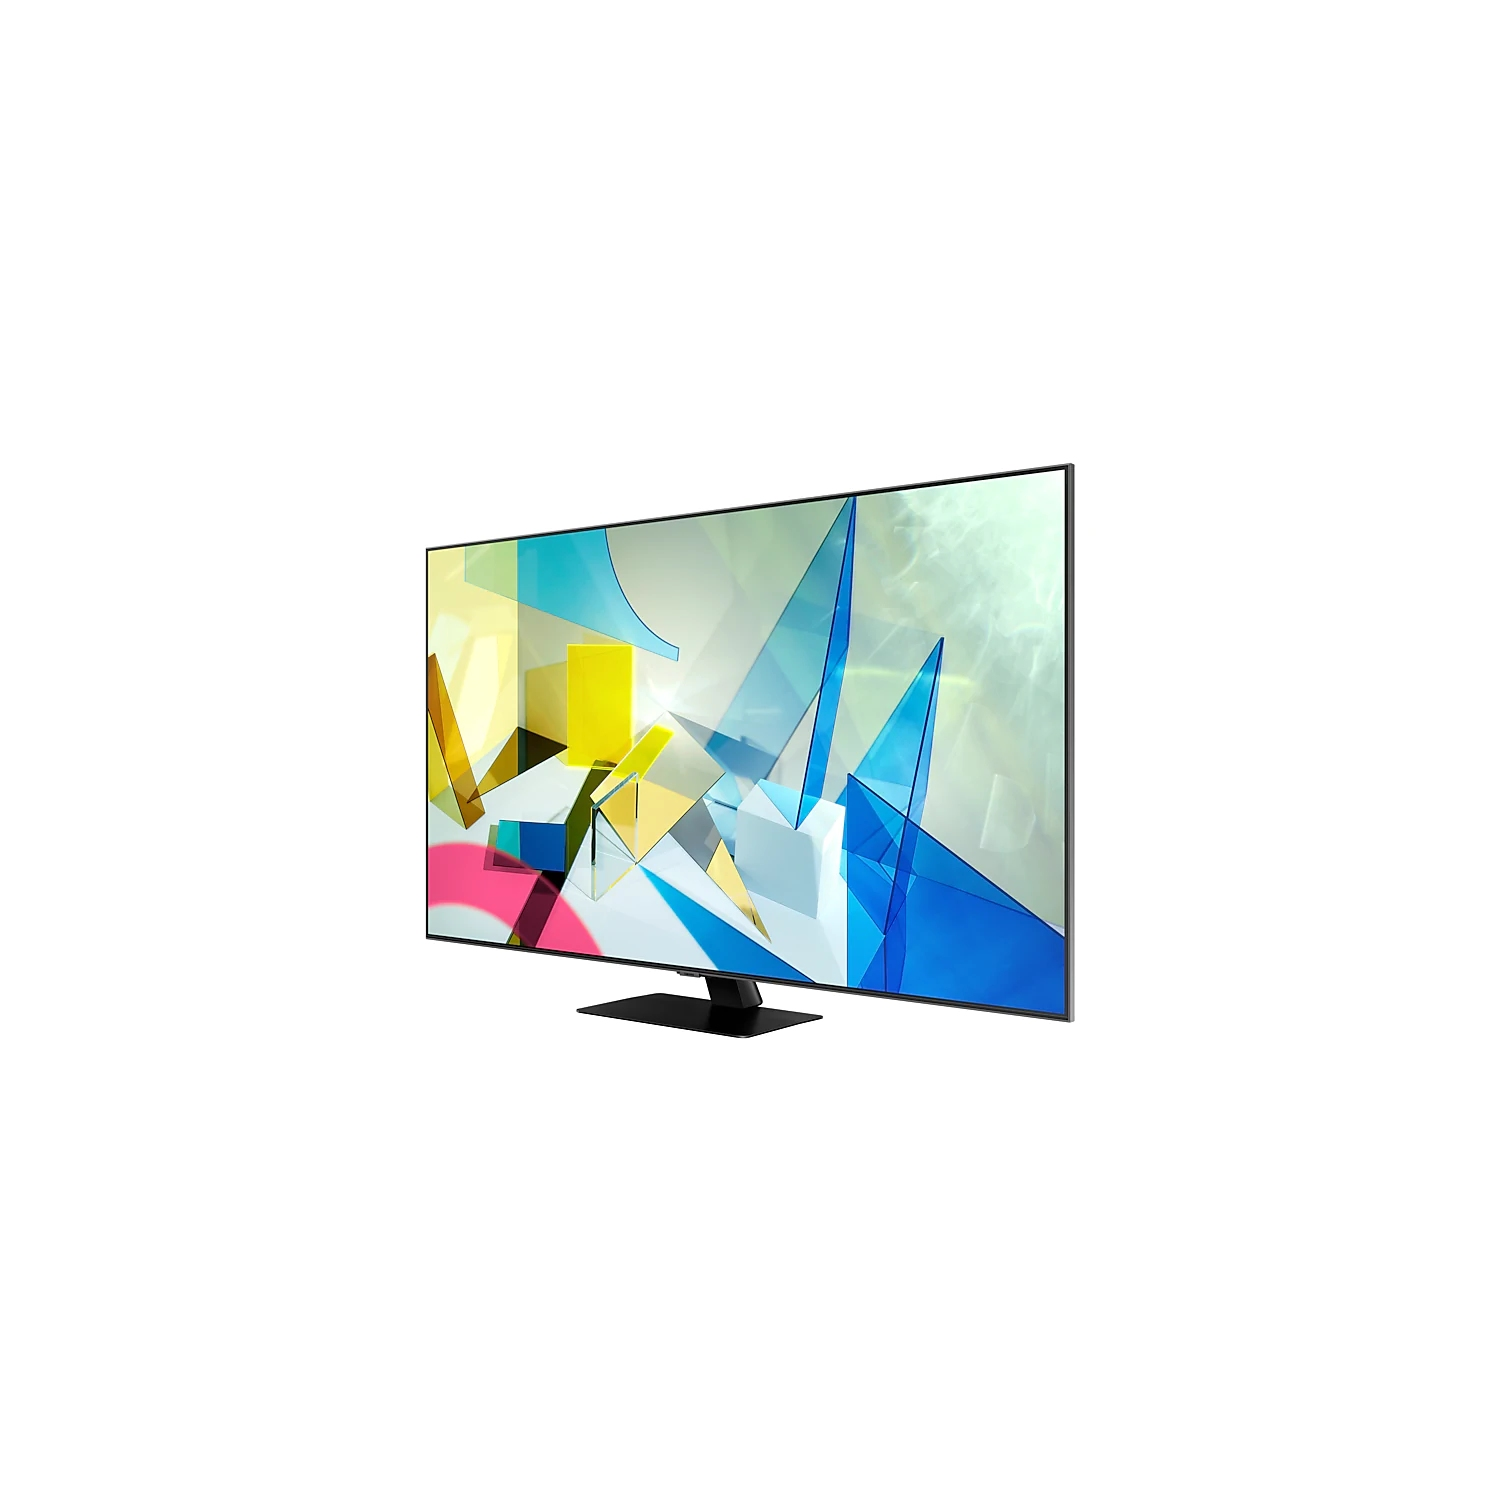 "Samsung QE50Q80T 50"" QLED 4K UHD Smart TV2020- 2021 MODEL - 2"